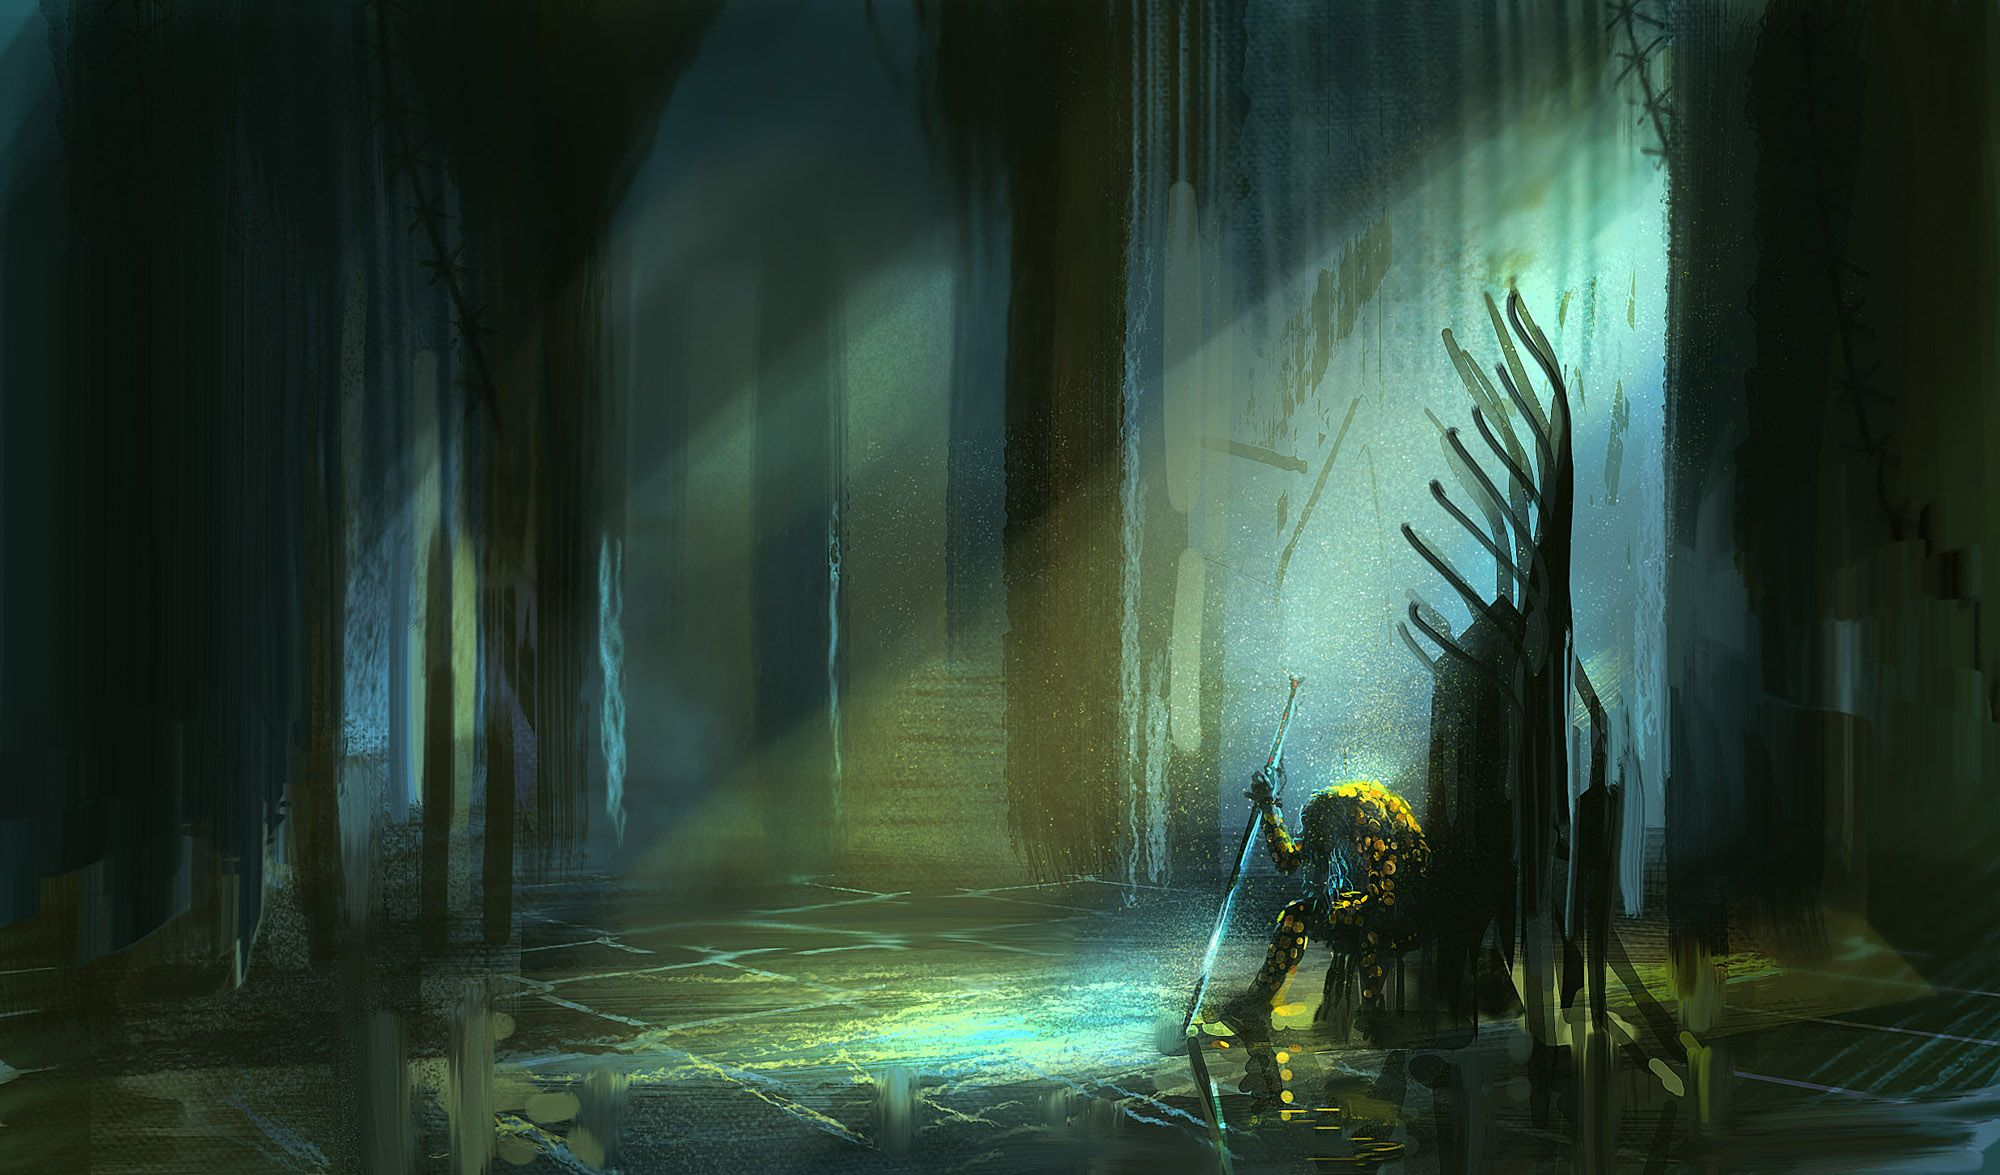 30 Min Speed Paint At Daily Spitpaint Topic: The Longest Sword I